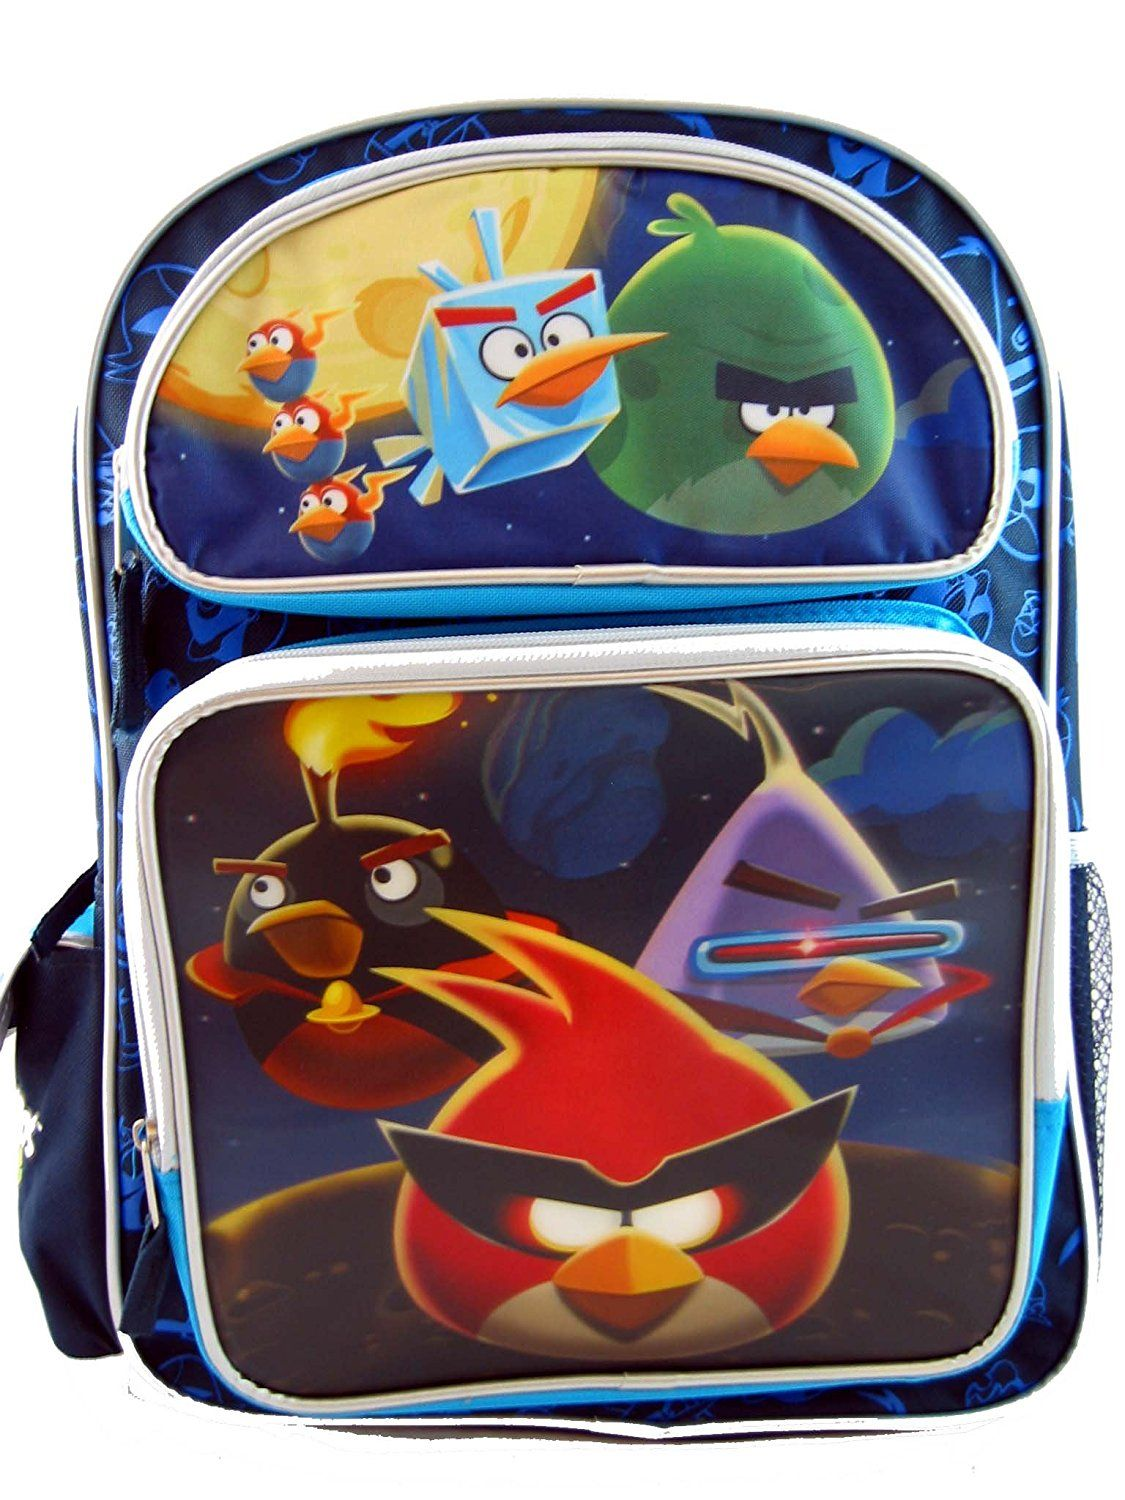 Angry birds space 3d lenticular large backpack bag tote 16 check angry birds space 3d lenticular large backpack bag tote 16 check this awesome product voltagebd Images